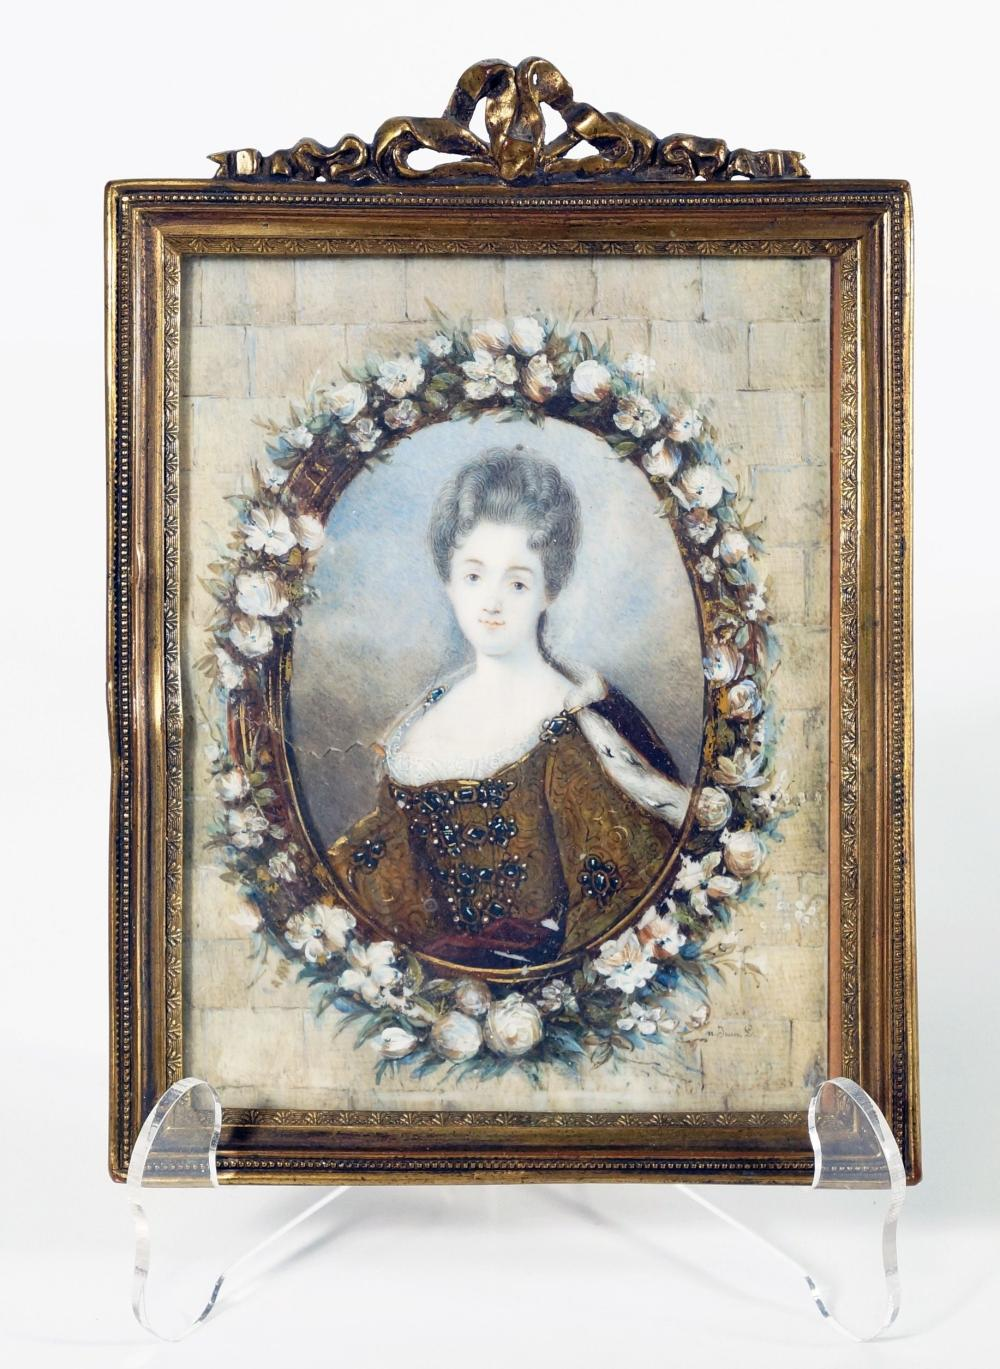 Louis Xv Style Portrait Of Maiden In Glt Bronze Frame